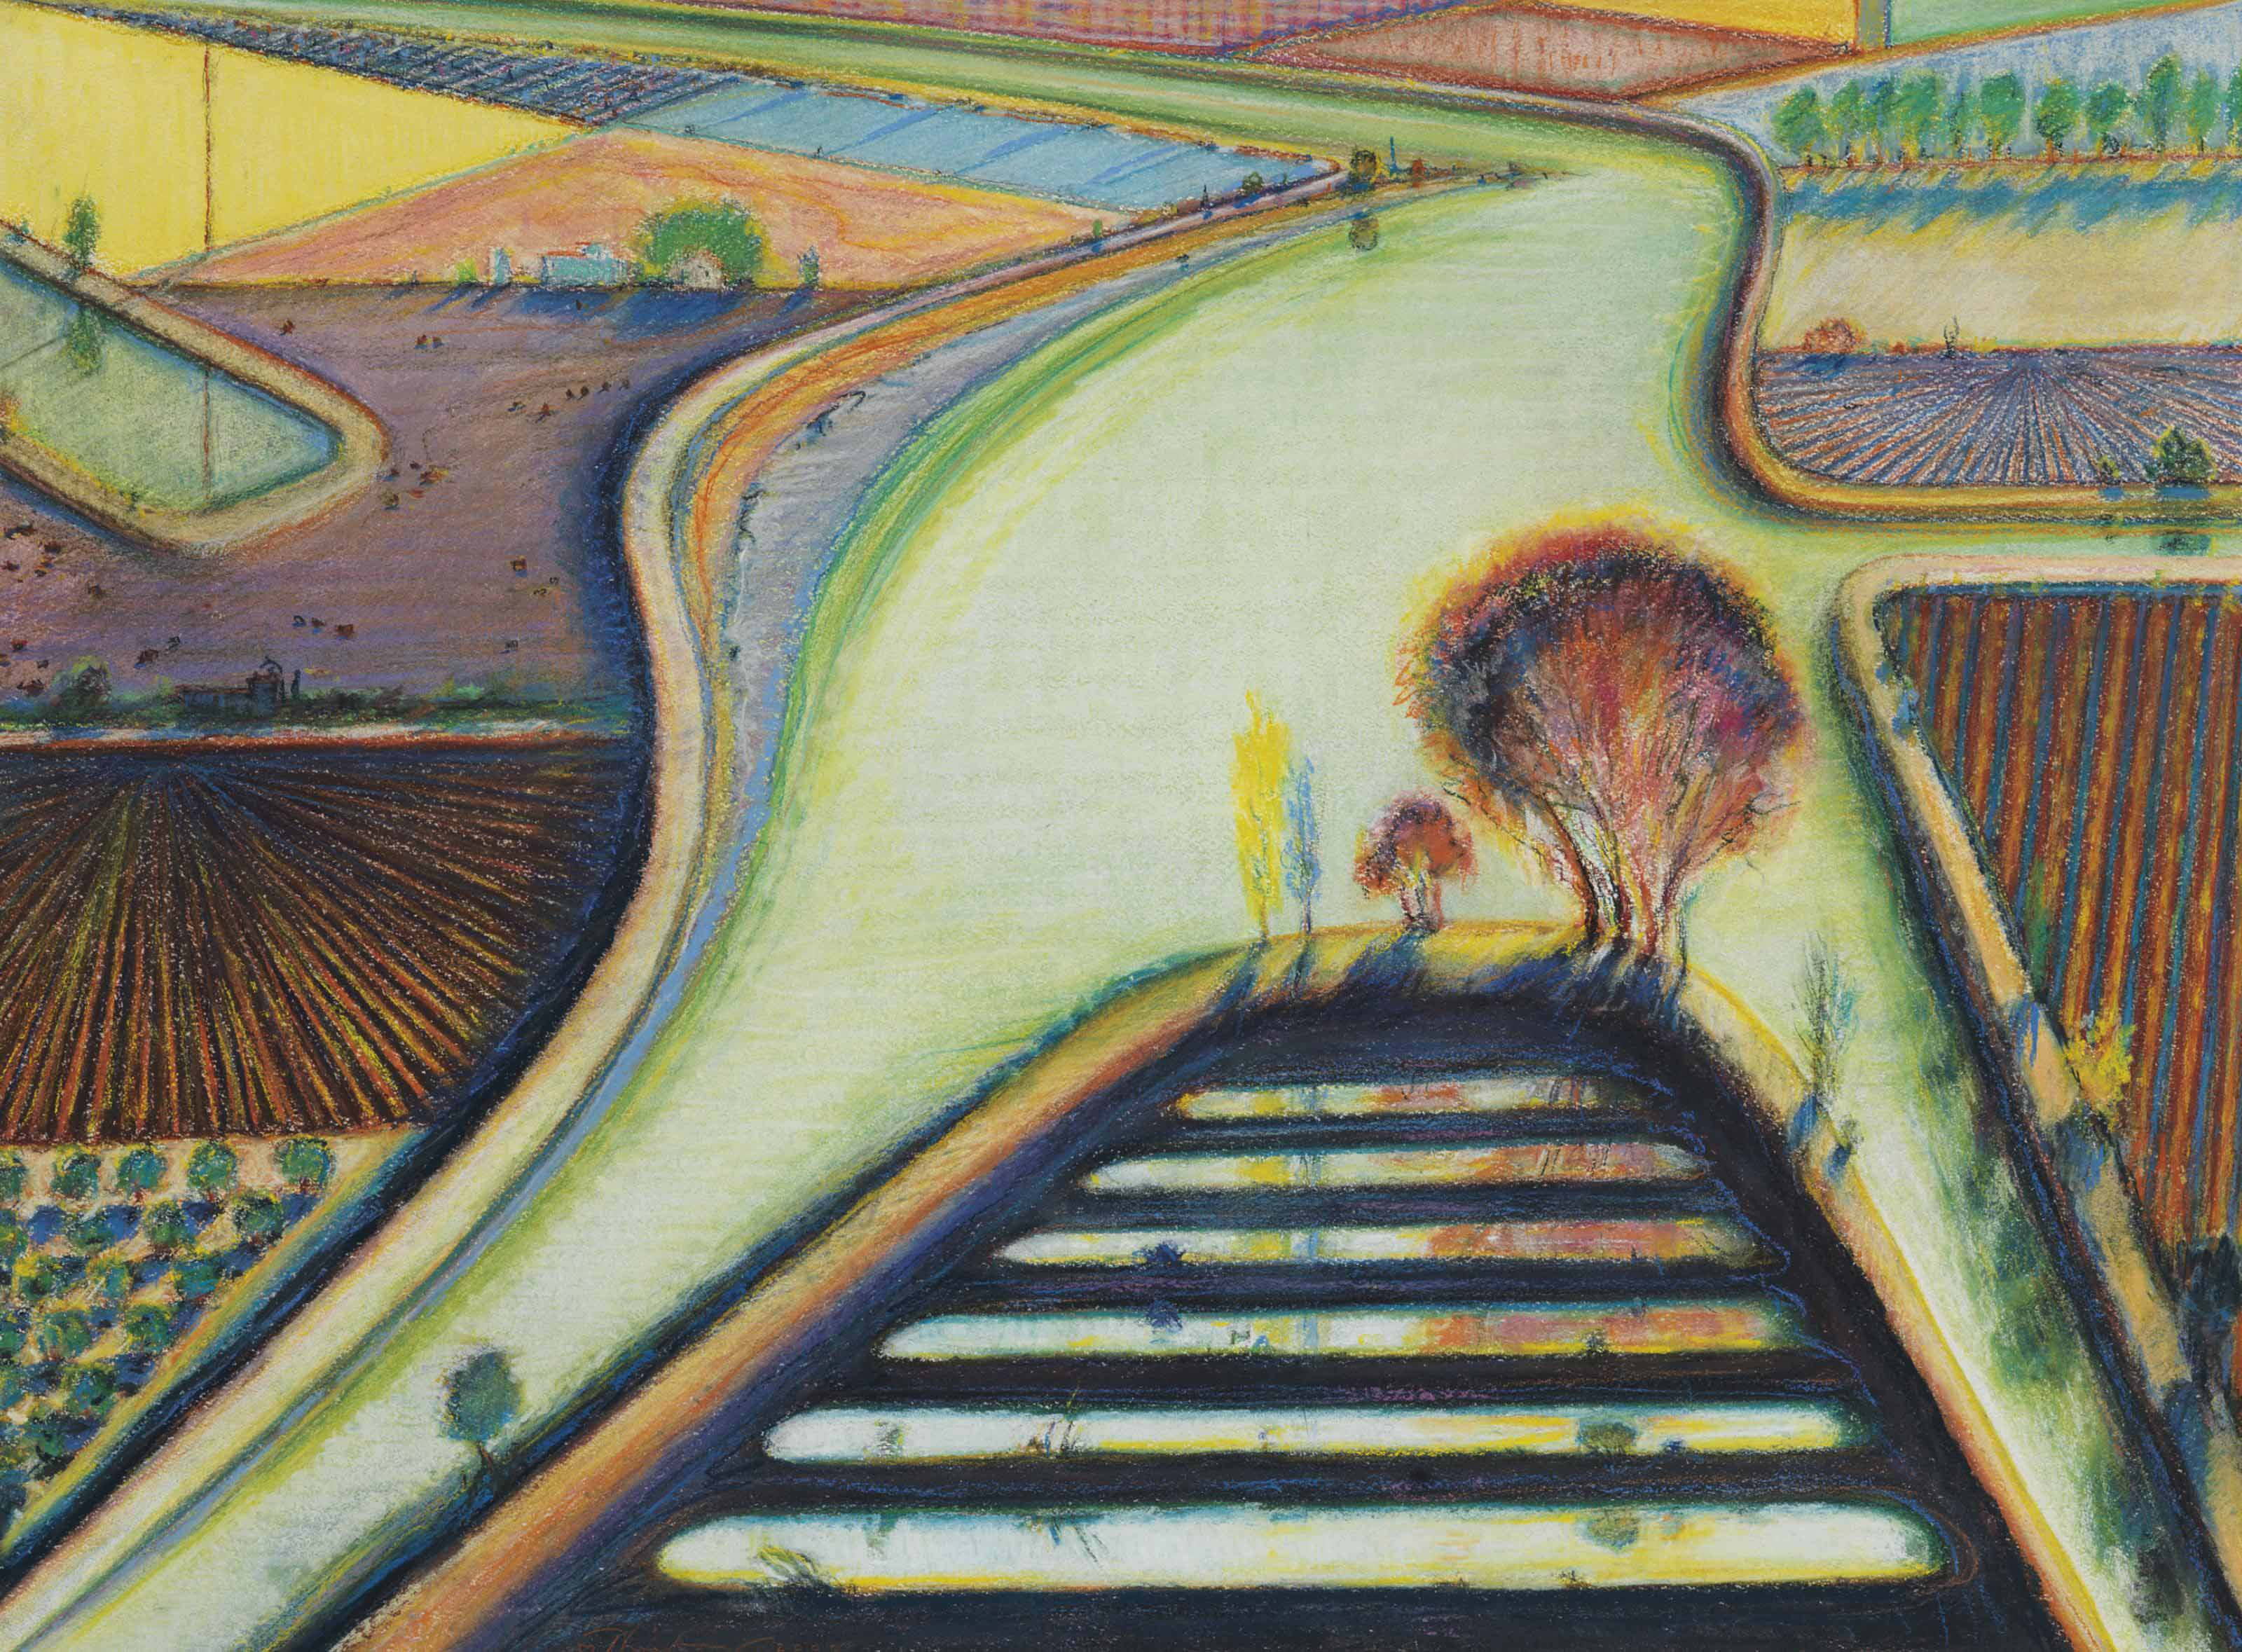 thiebaud essay A slice of life at 97 years of age, he is unequivocally one of the world's greatest living artists but back in 1959, wayne thiebaud was still trying to find his way as a young college professor at uc davis.